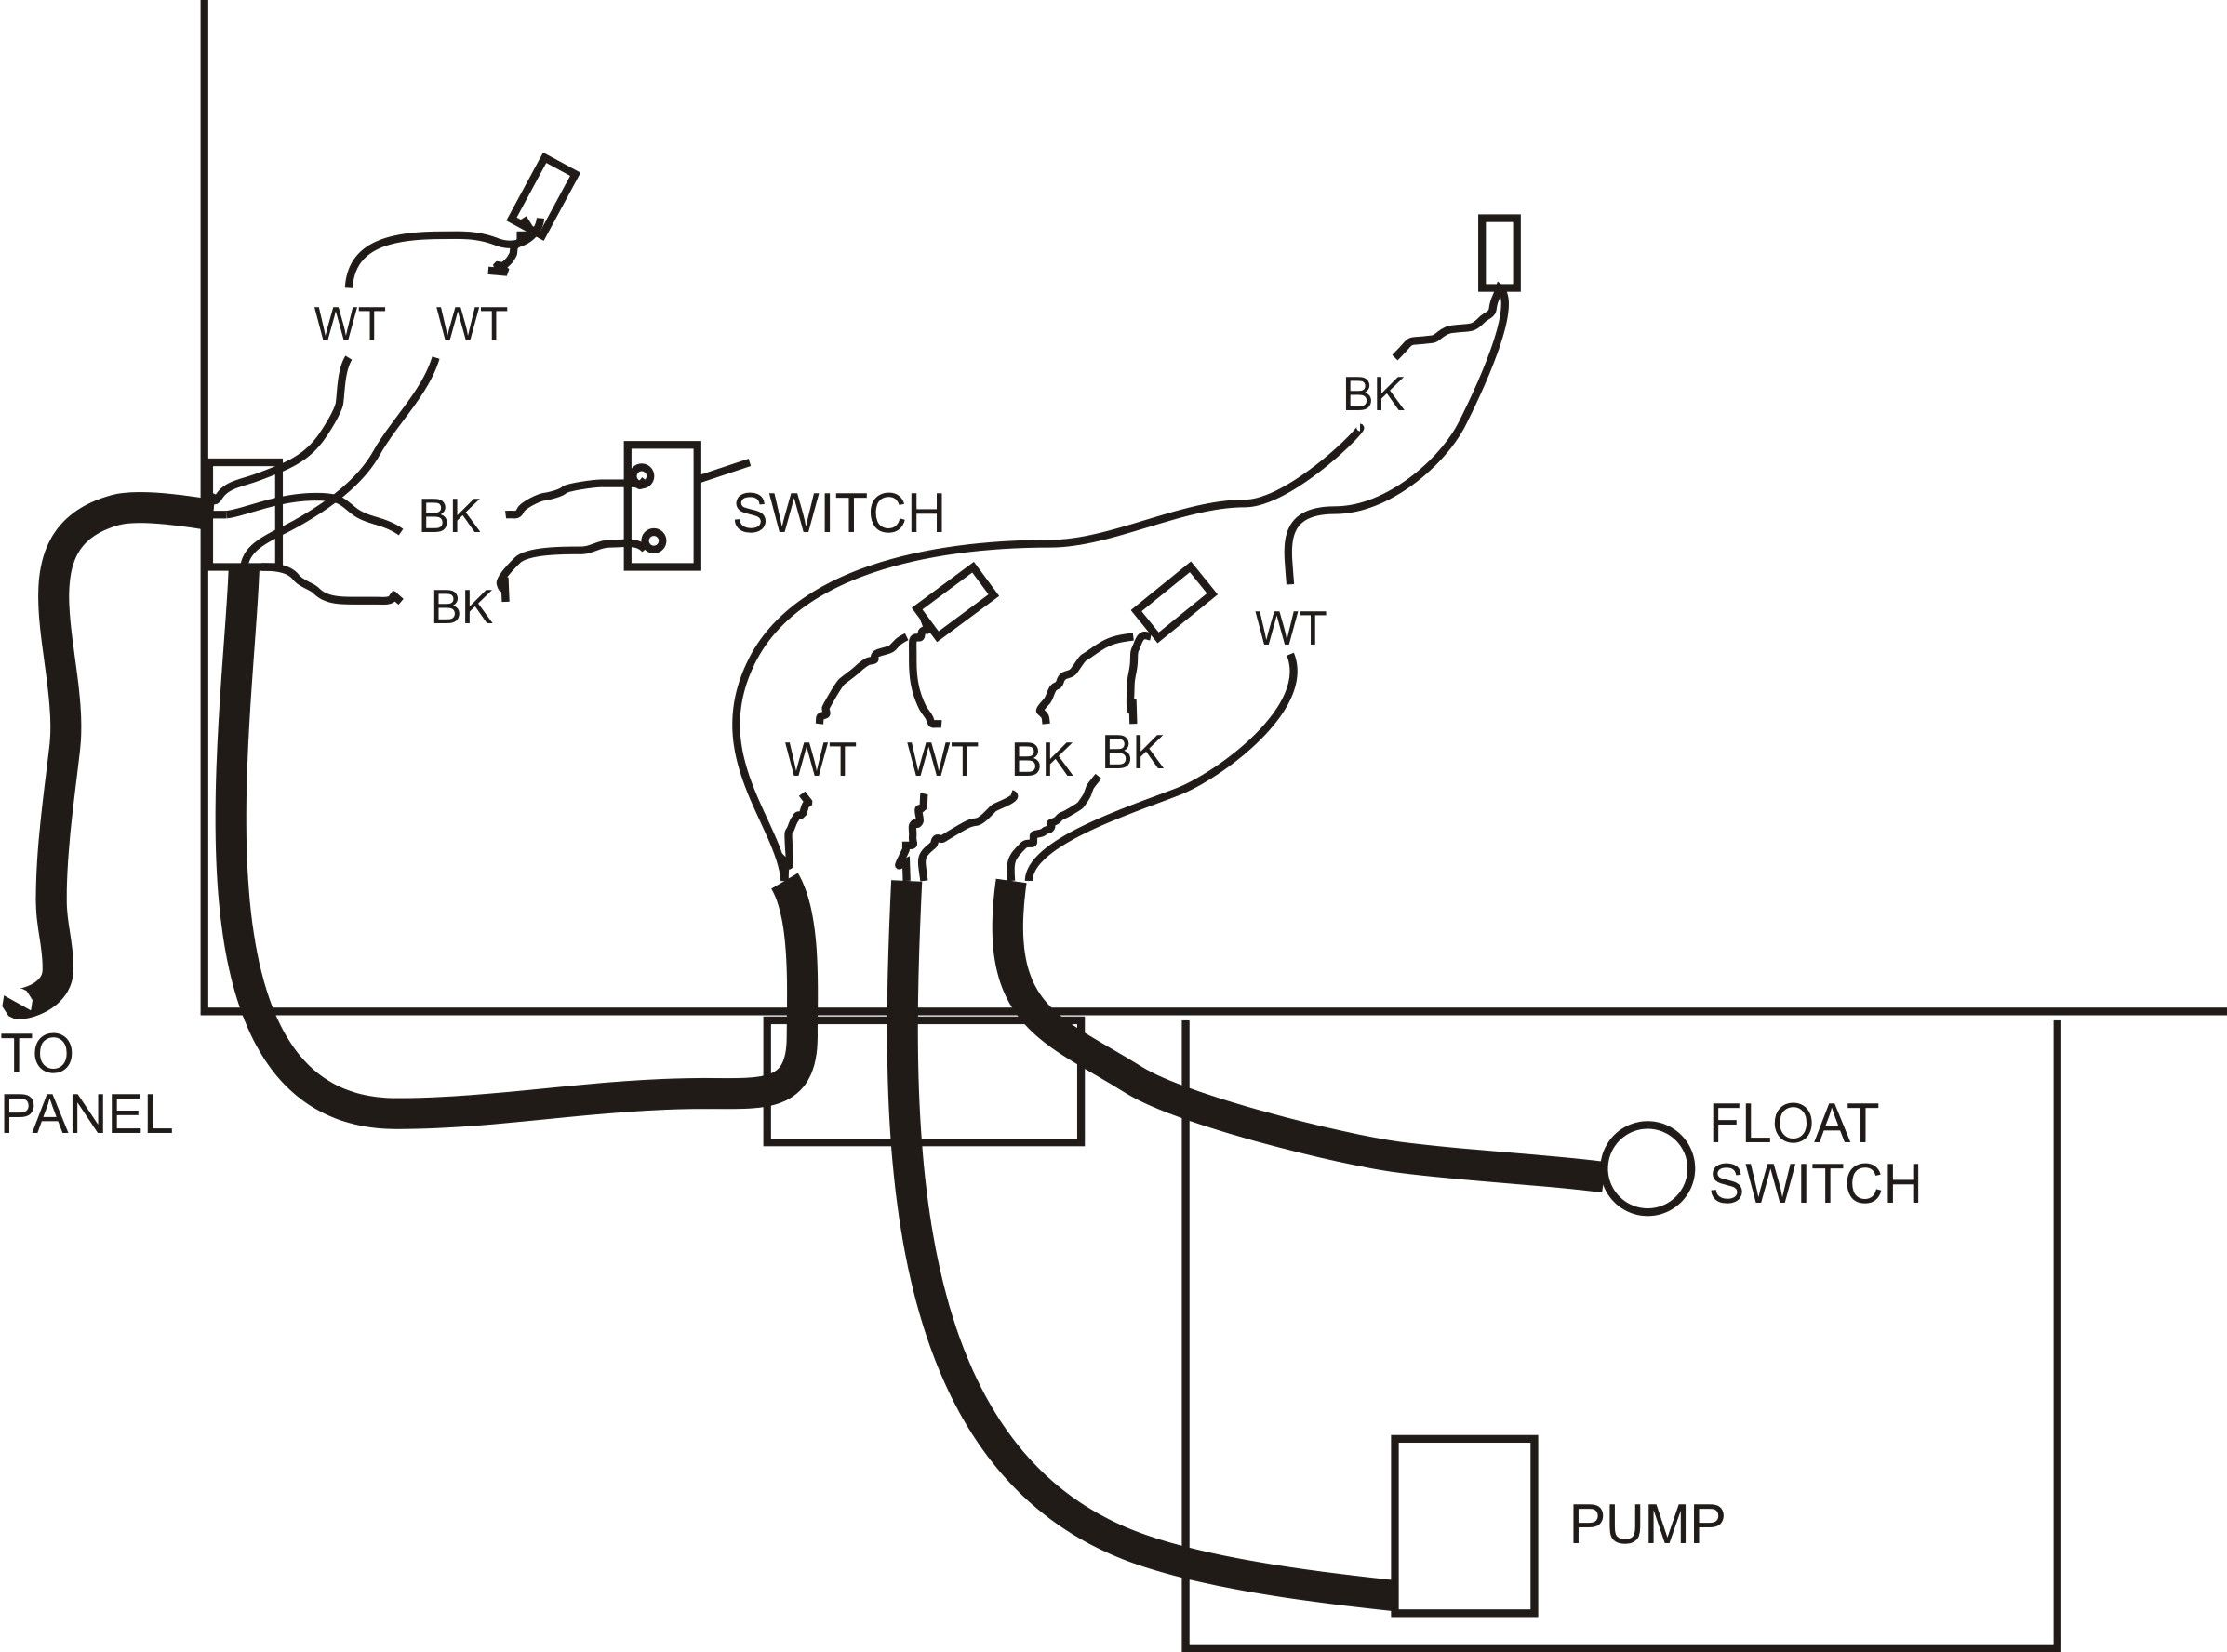 sewage pump wiring diagram wiring diagram name wiring diagram likewise water tank float switch on water tank float [ 2394 x 1776 Pixel ]